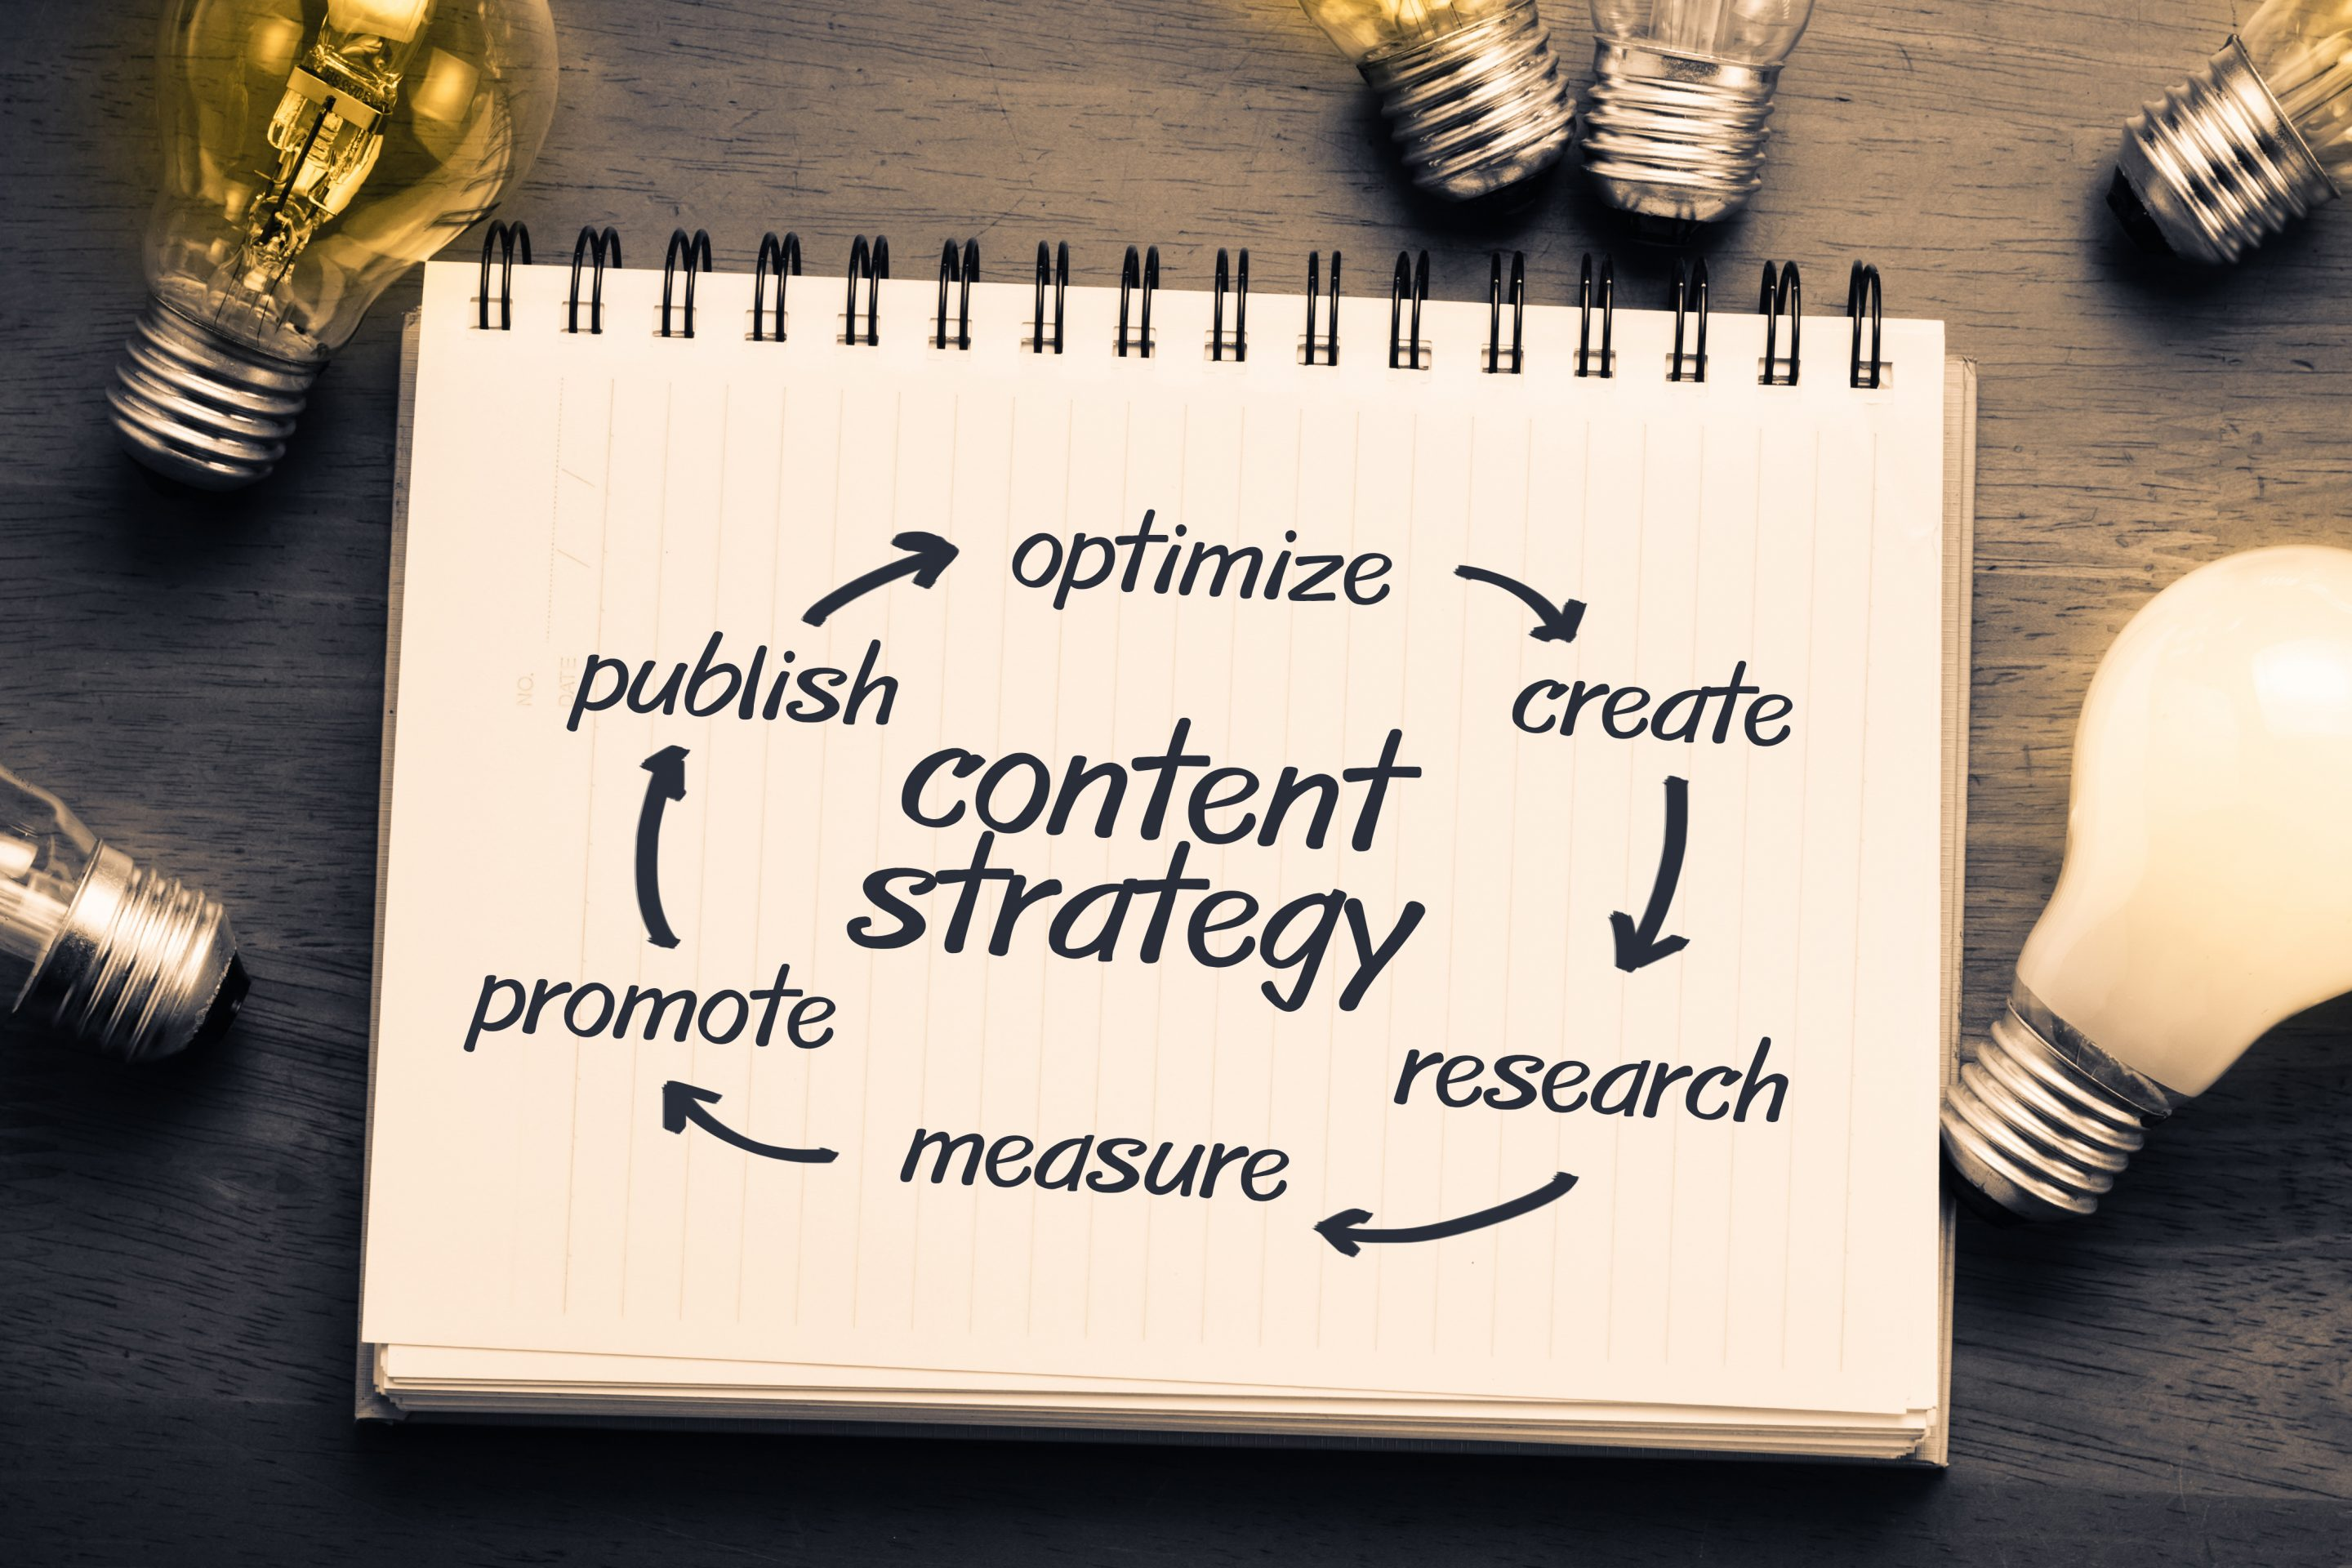 Top 10 Content Marketing Trends To Watch For In 2020